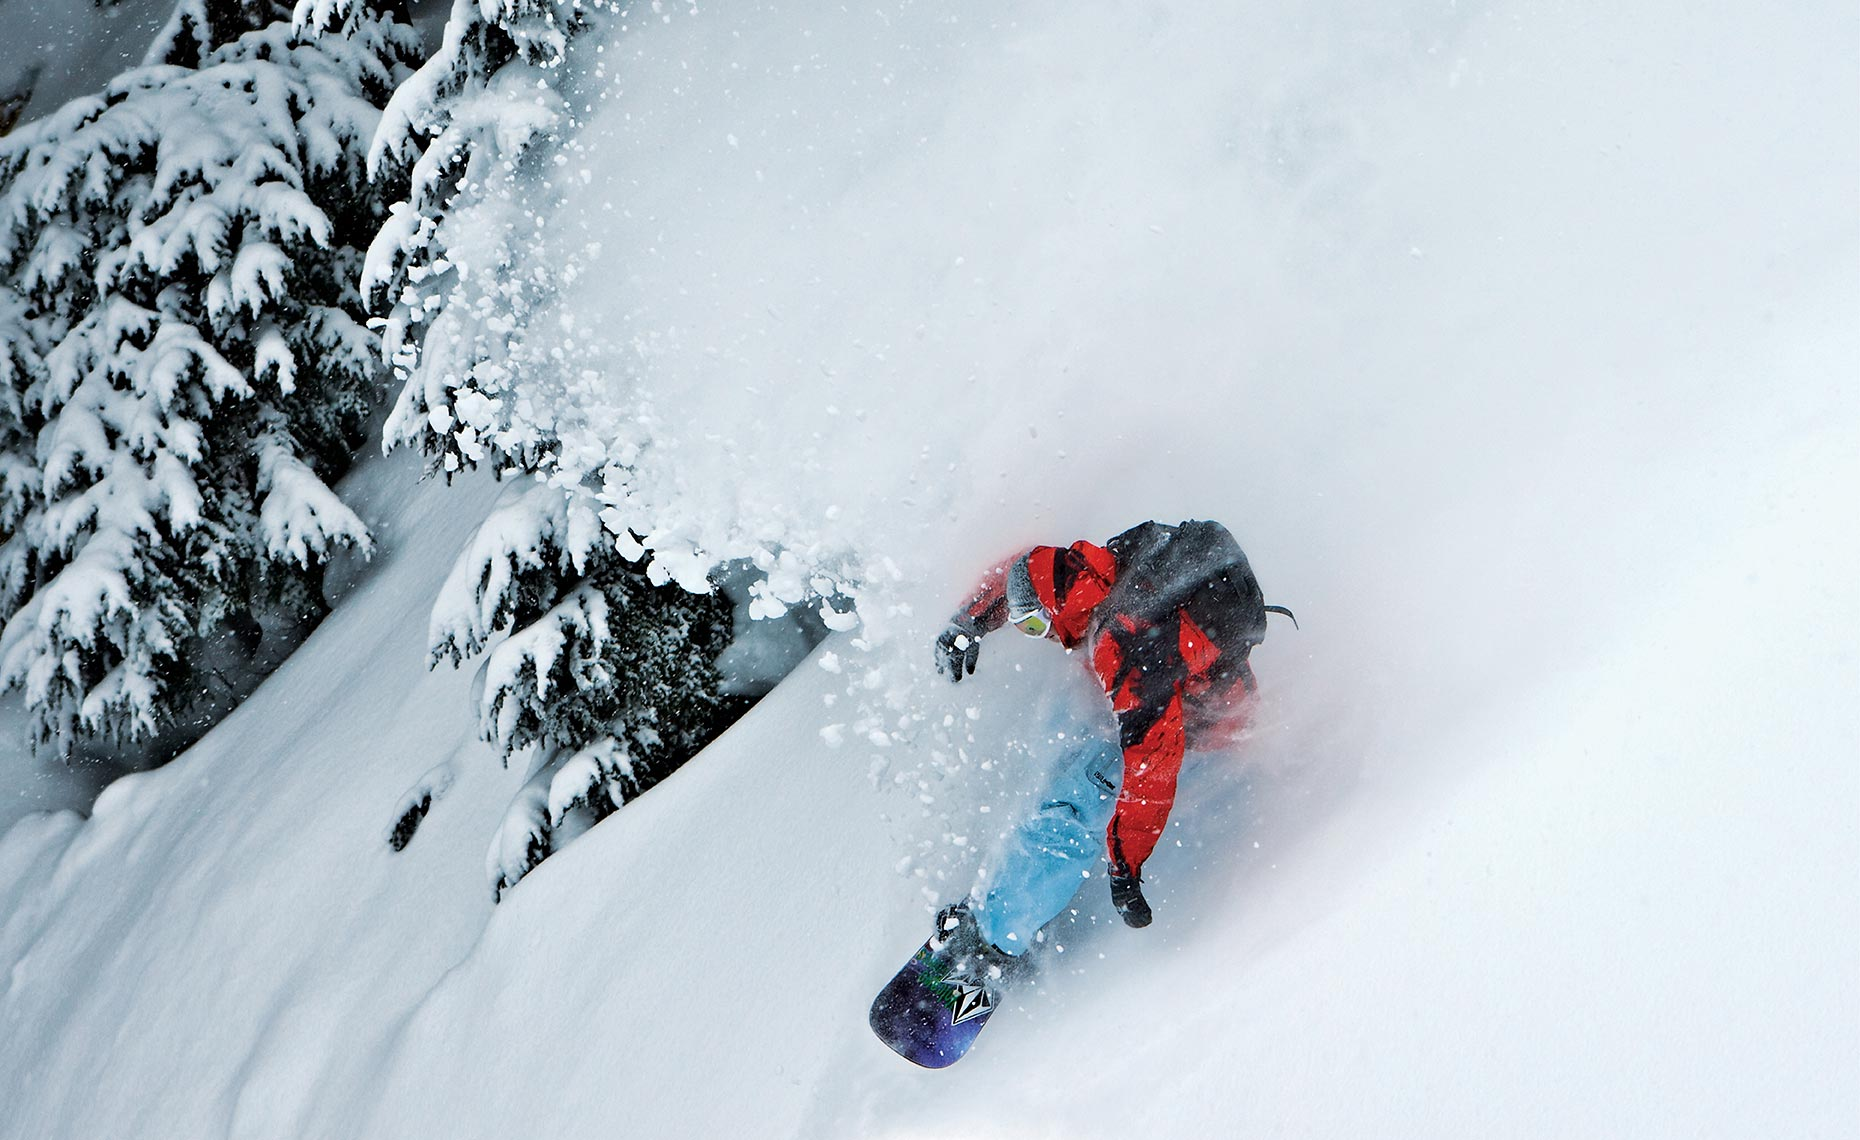 08_Curtis_Ciszek_Mt_Baker_Powder_Snowboarding_Chris_Wellhausen_Photography.JPG